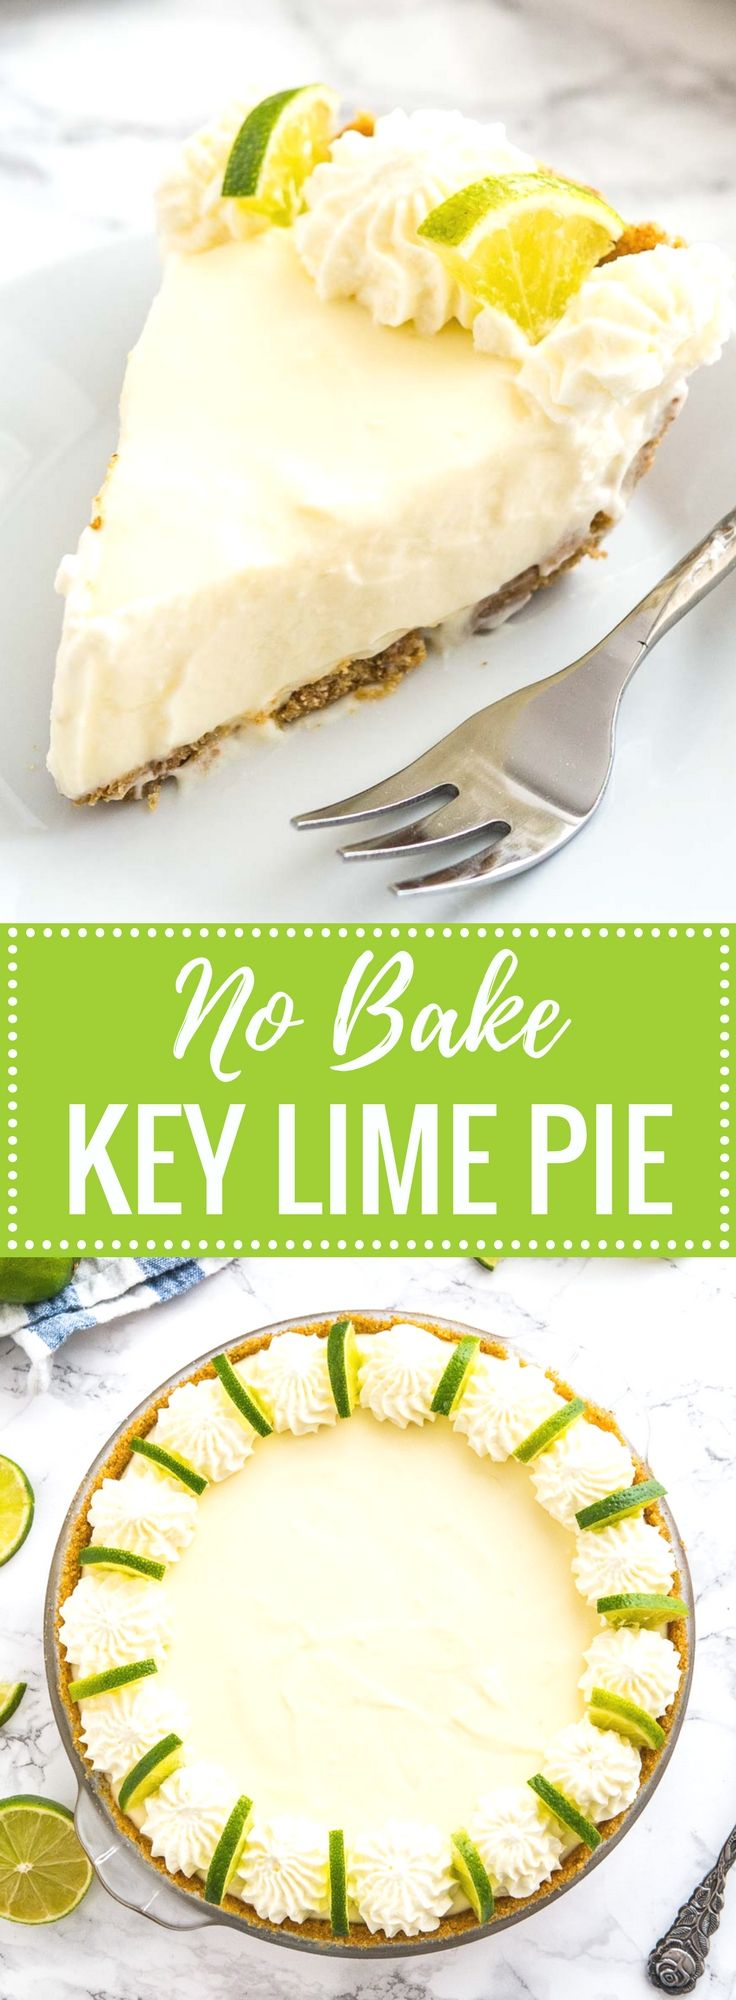 No Bake Key Lime Pie is a delicious, easy summer dessert made with only a few, simple ingredients! An easy-to-prep NO-BAKE lime cake recipe that is perfect for when you just CANNOT turn your oven on in the summertime.